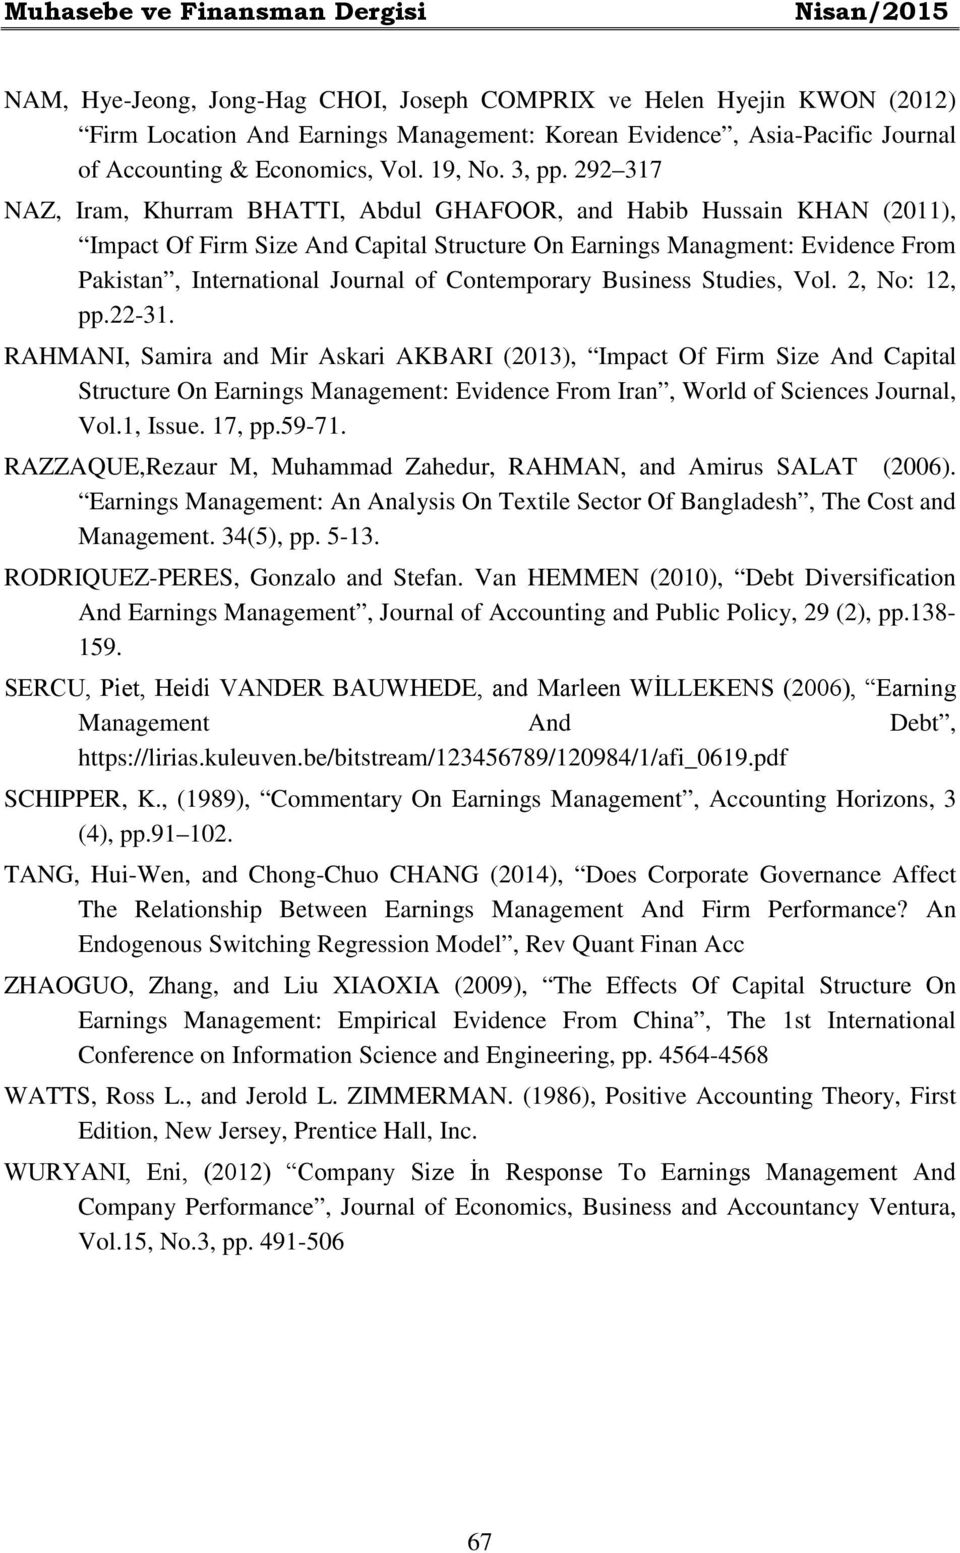 292 317 NAZ, Iram, Khurram BHATTI, Abdul GHAFOOR, and Habib Hussain KHAN (2011), Impact Of Firm Size And Capital Structure On Earnings Managment: Evidence From Pakistan, International Journal of